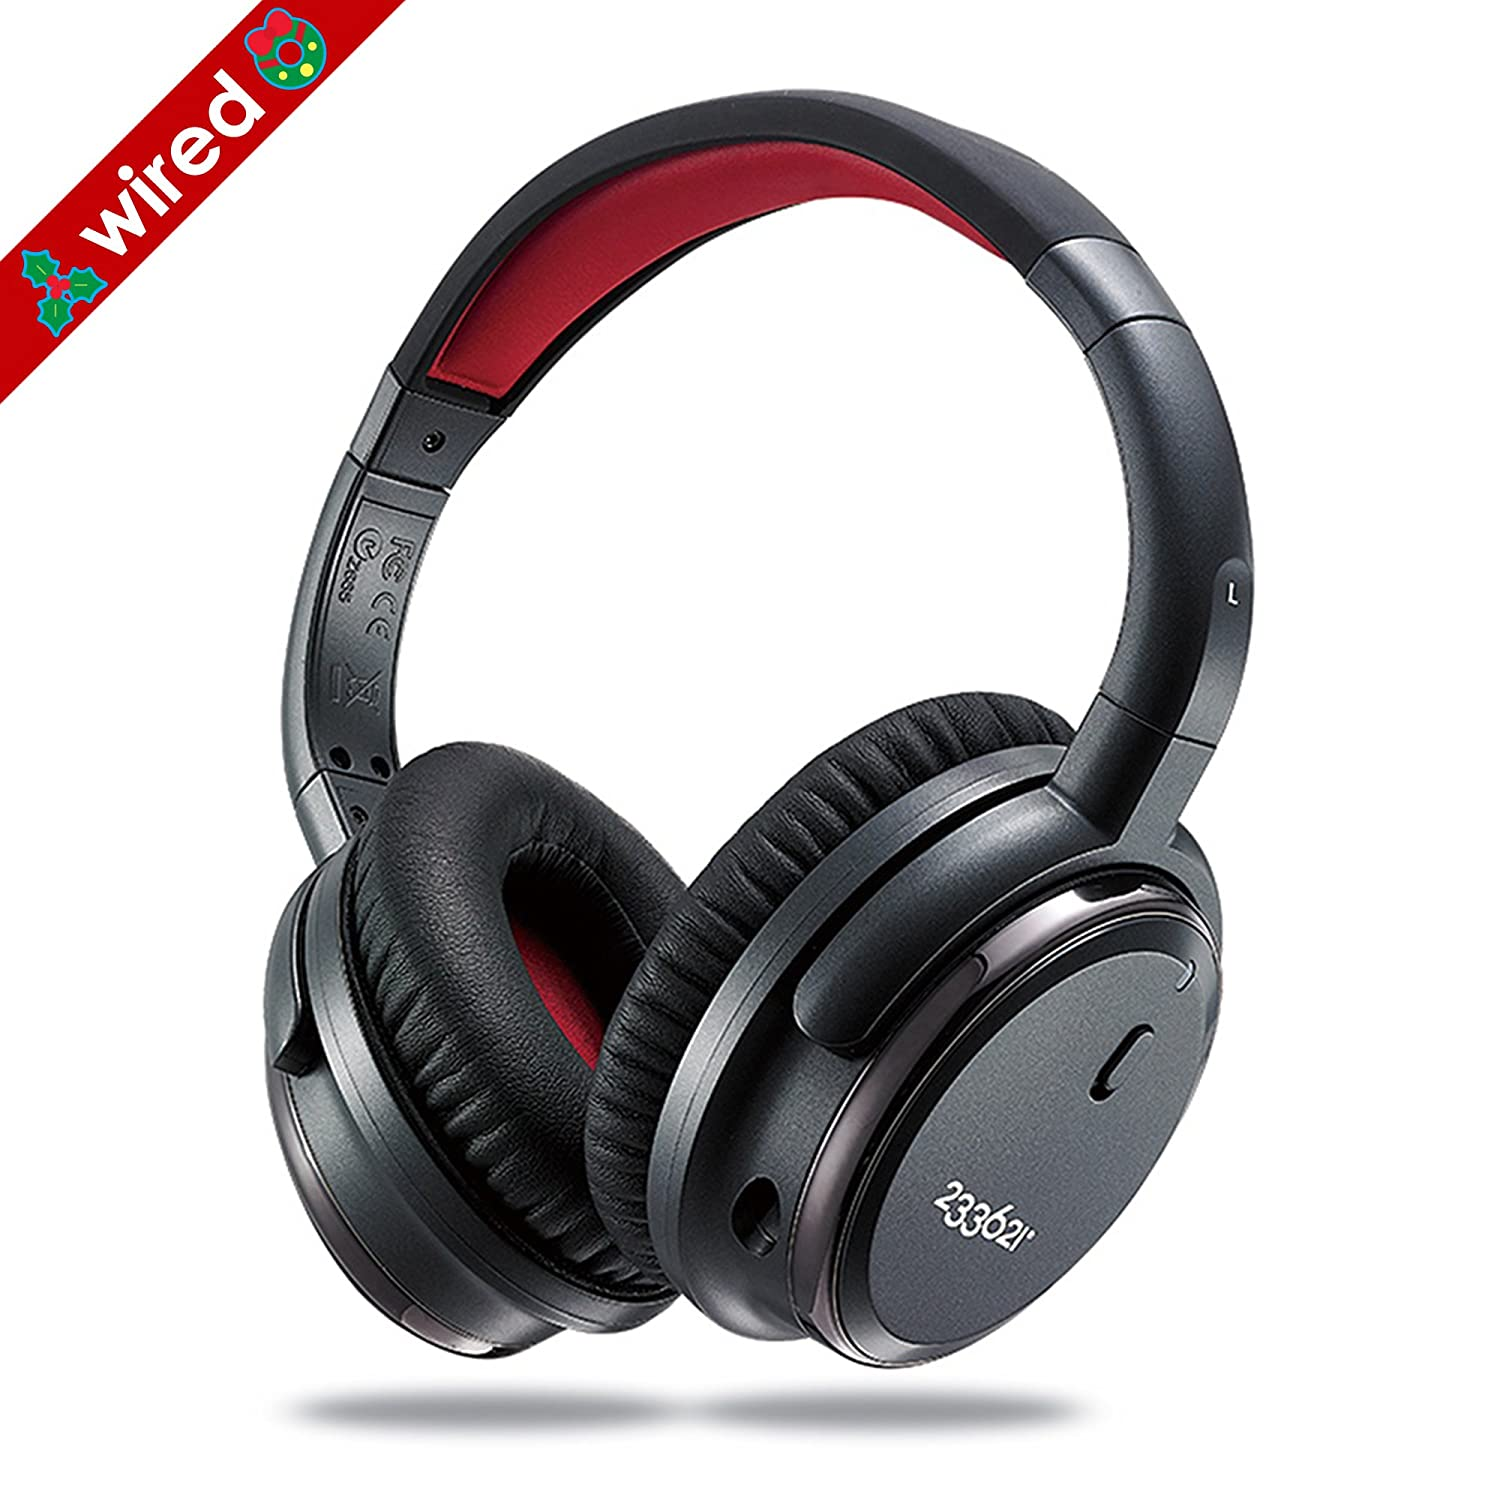 H501 Active Noise Cancelling Over Ear Stereo Music Headphones, Features with Inline Microphone and Volume Control, 50-hours Battery Time, Detachable Audio Cable and Carrying Case (Wired) 233621